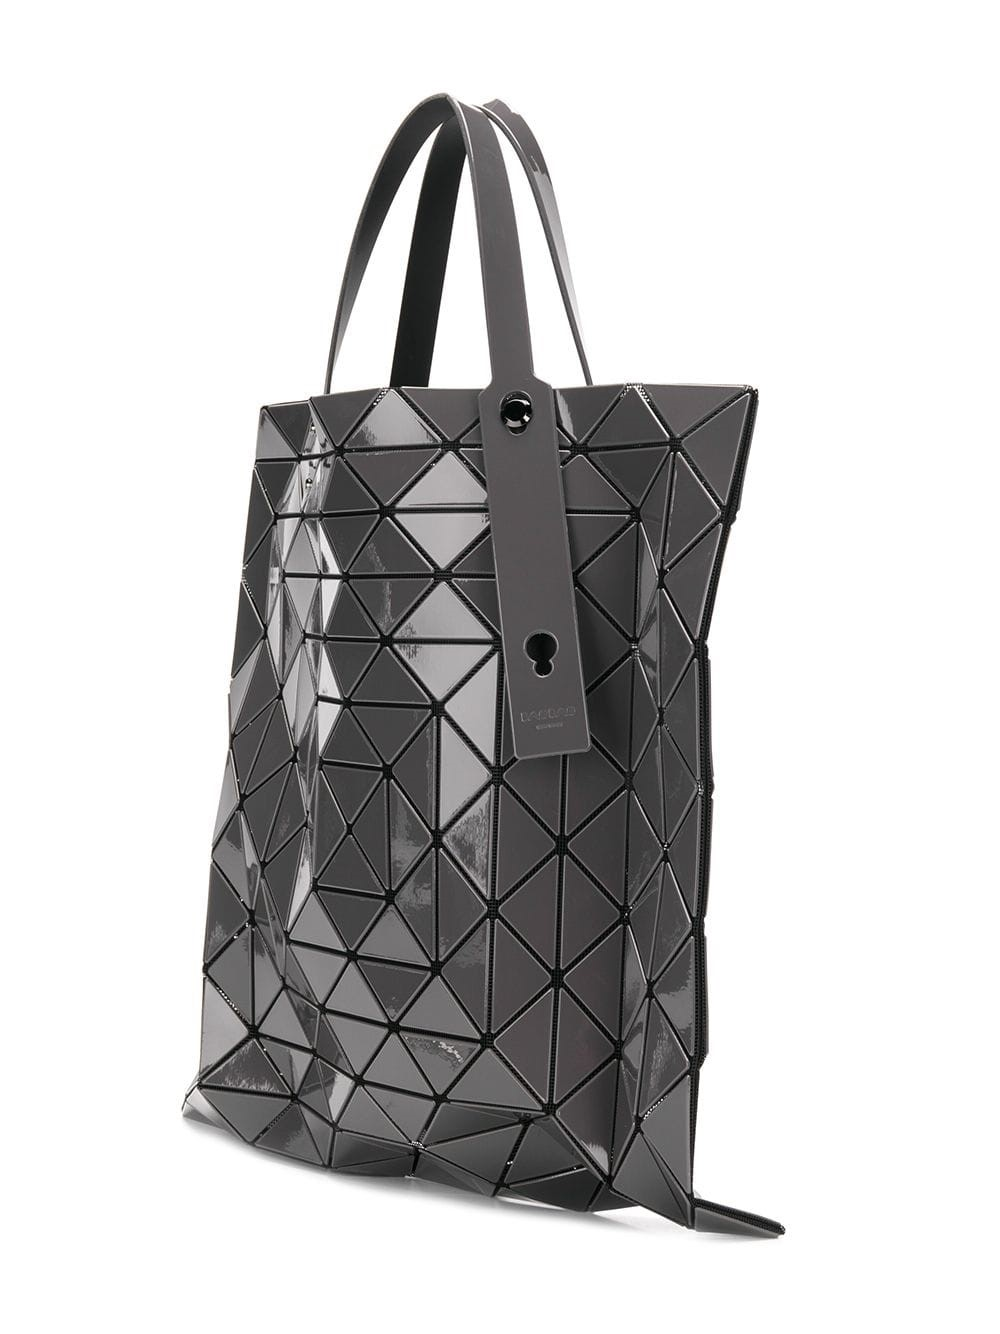 e86bb65b67 bao bao issey miyake WOMAN BAG available on montiboutique.com - 23483